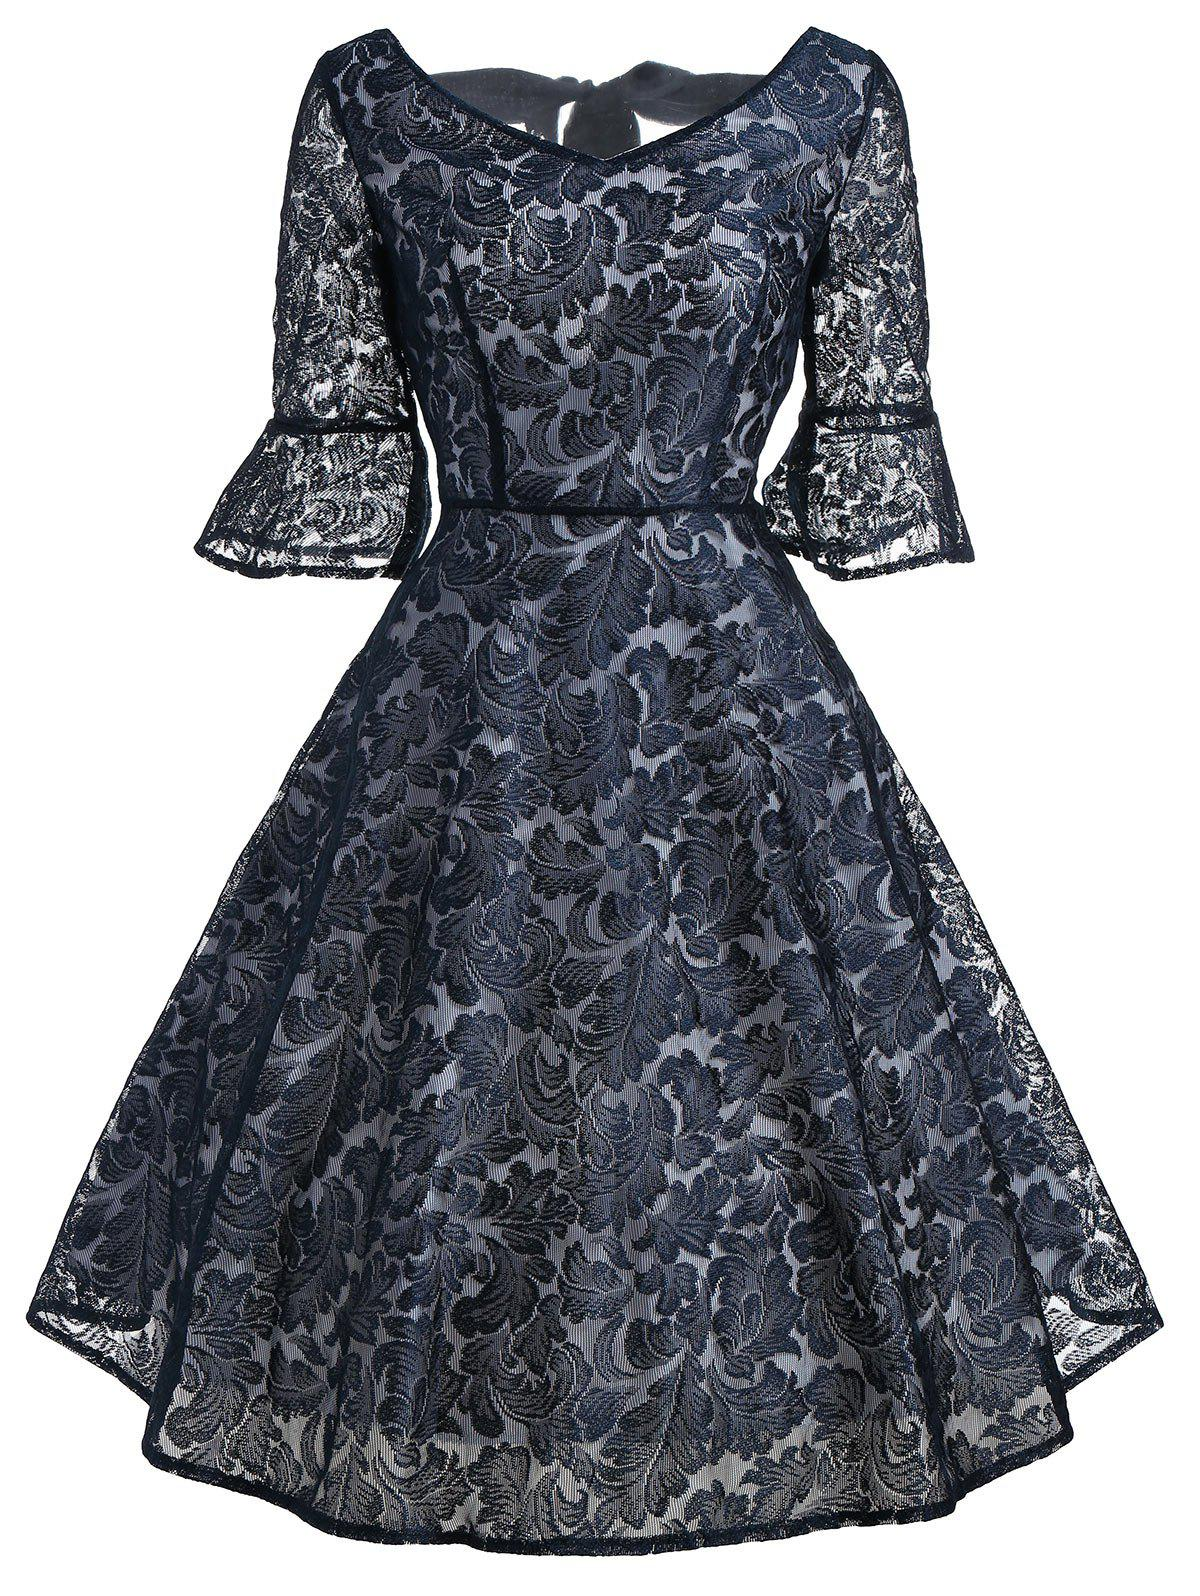 Bell Sleeve Bowknot Lace Dress - PURPLISH BLUE S